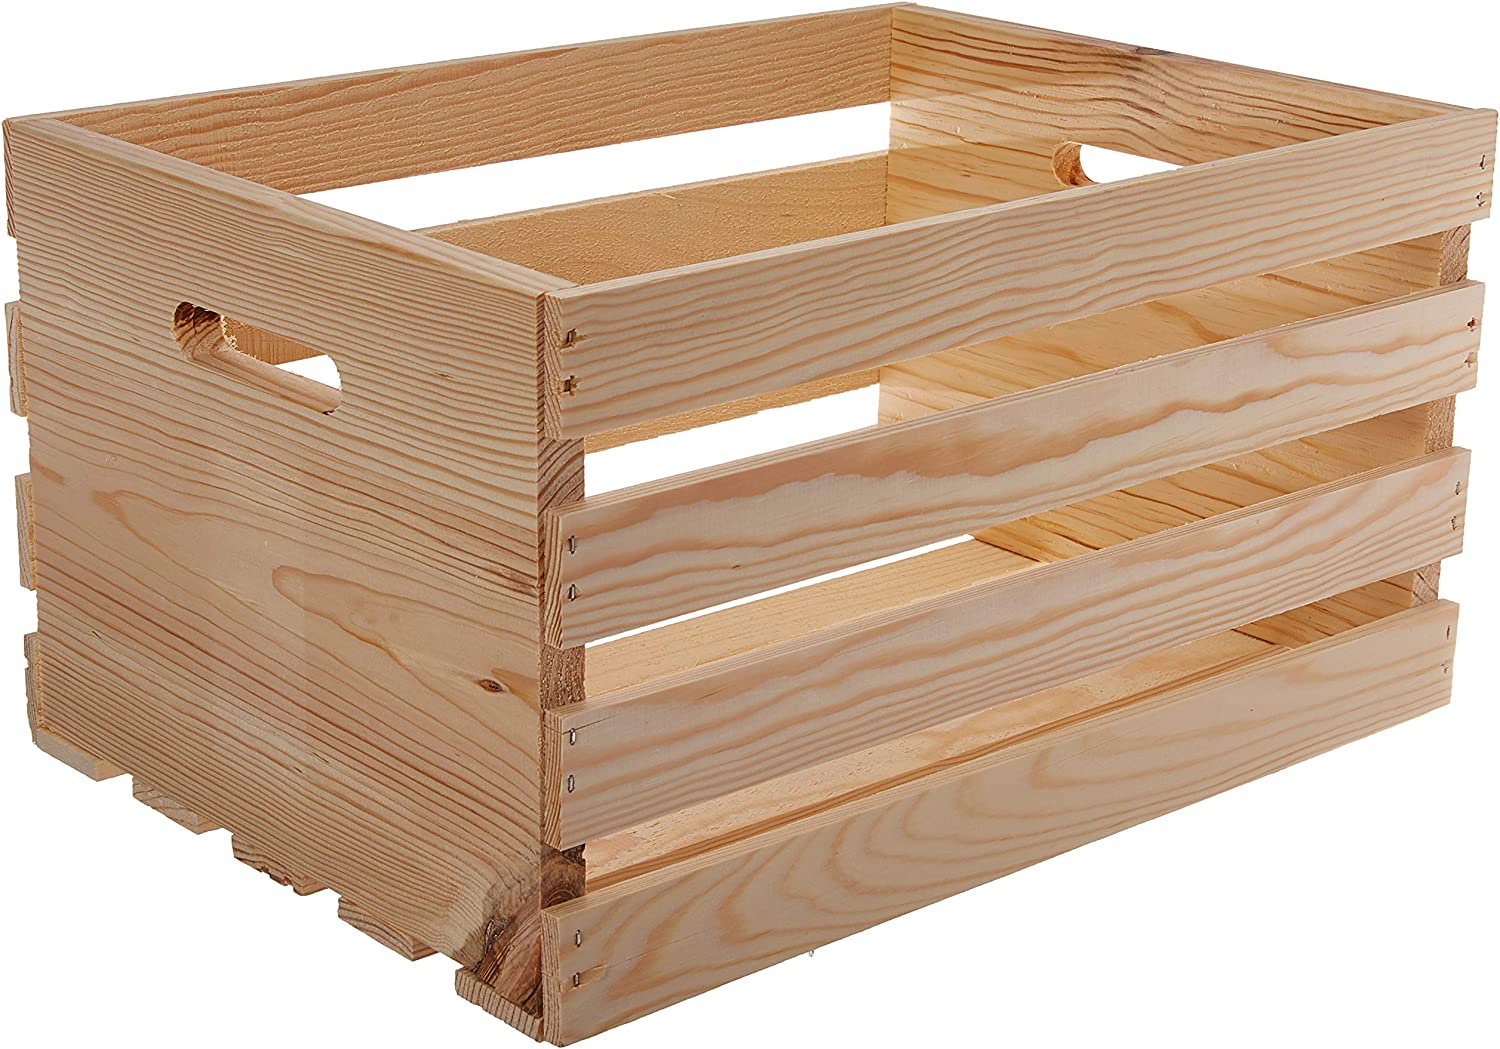 "Amazon.com: Houseworks 67140 18"" Lx12.5 Wx9.5 H Large Crates & Pallet Wood Crate"